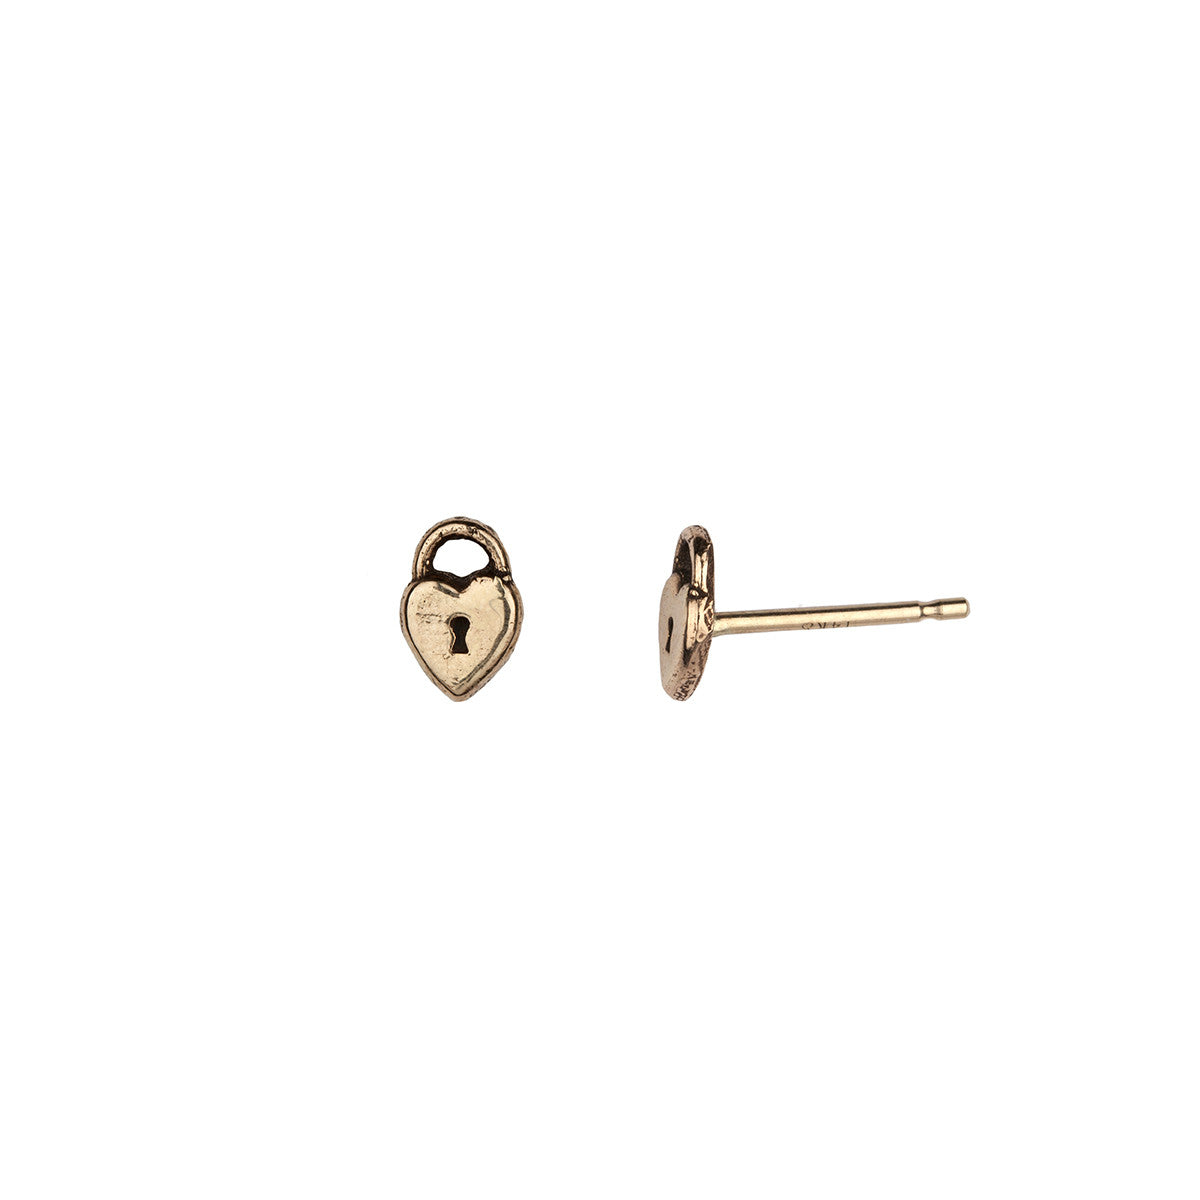 Heart Lock 14K Gold Symbol Stud